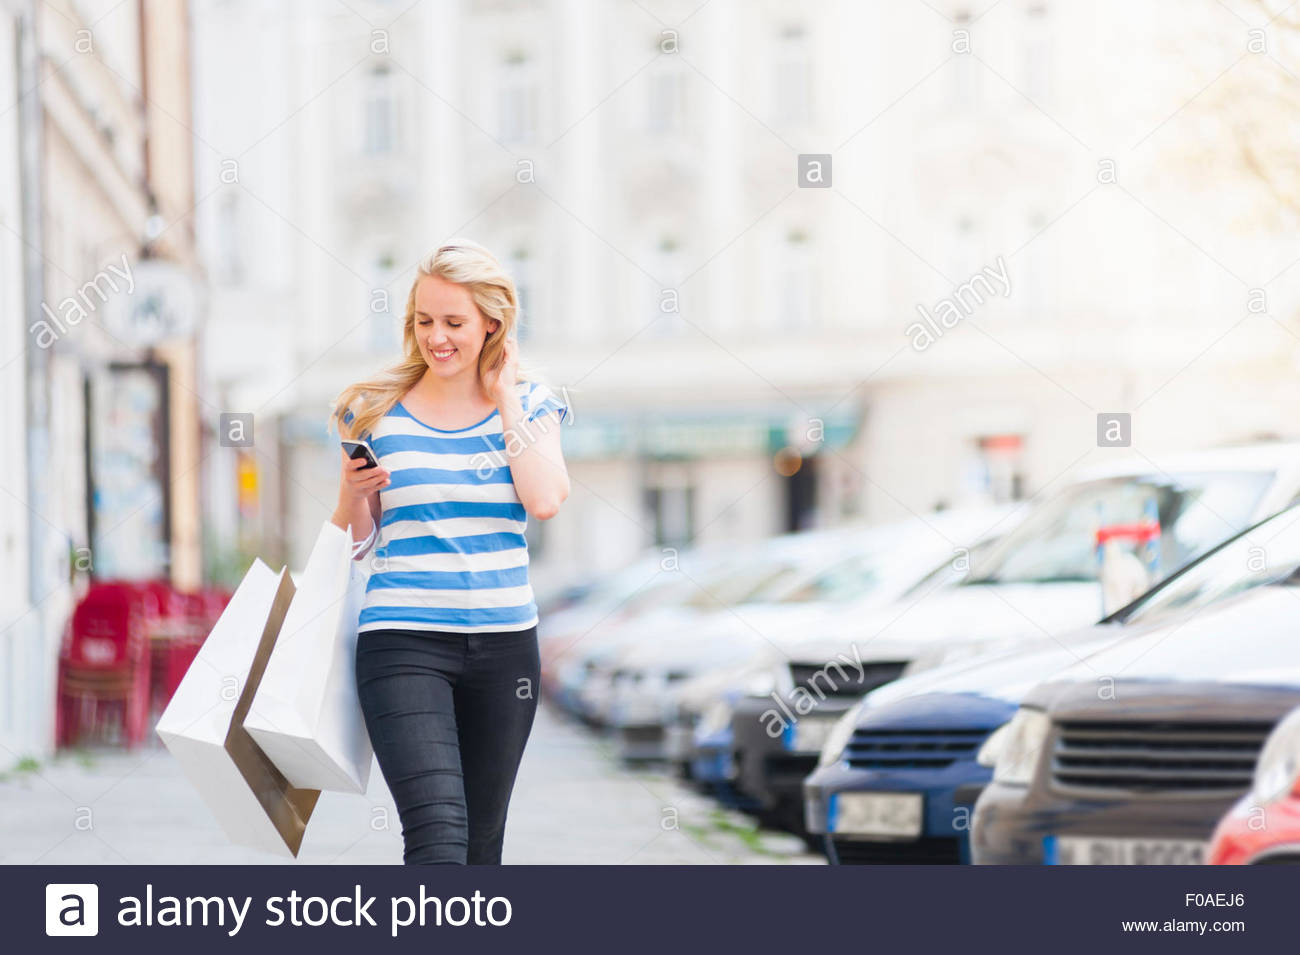 Young woman walking down street, carrying shopping bags, using smartphone - Stock Image